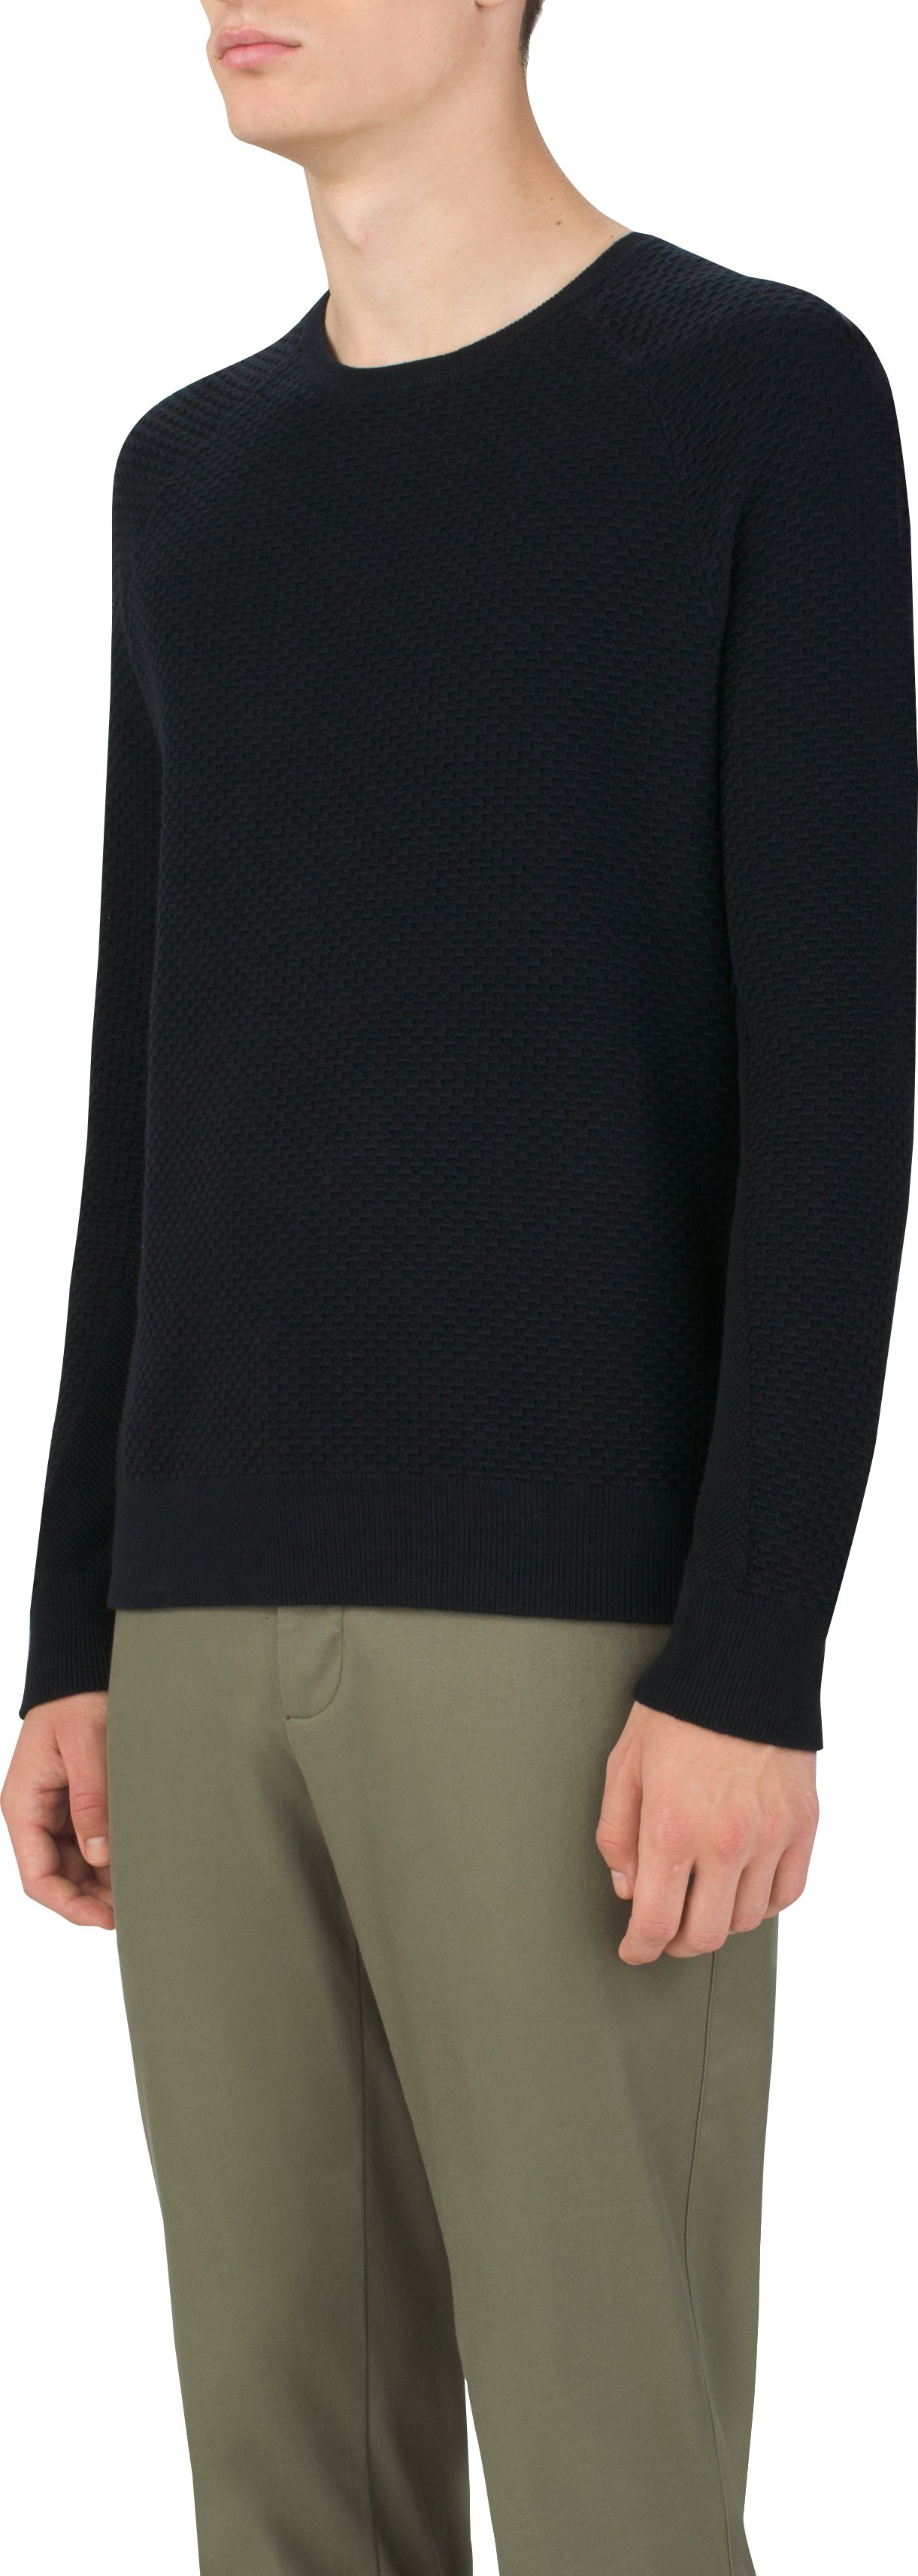 Gridknit Crew Sweater, Black , zoomed image